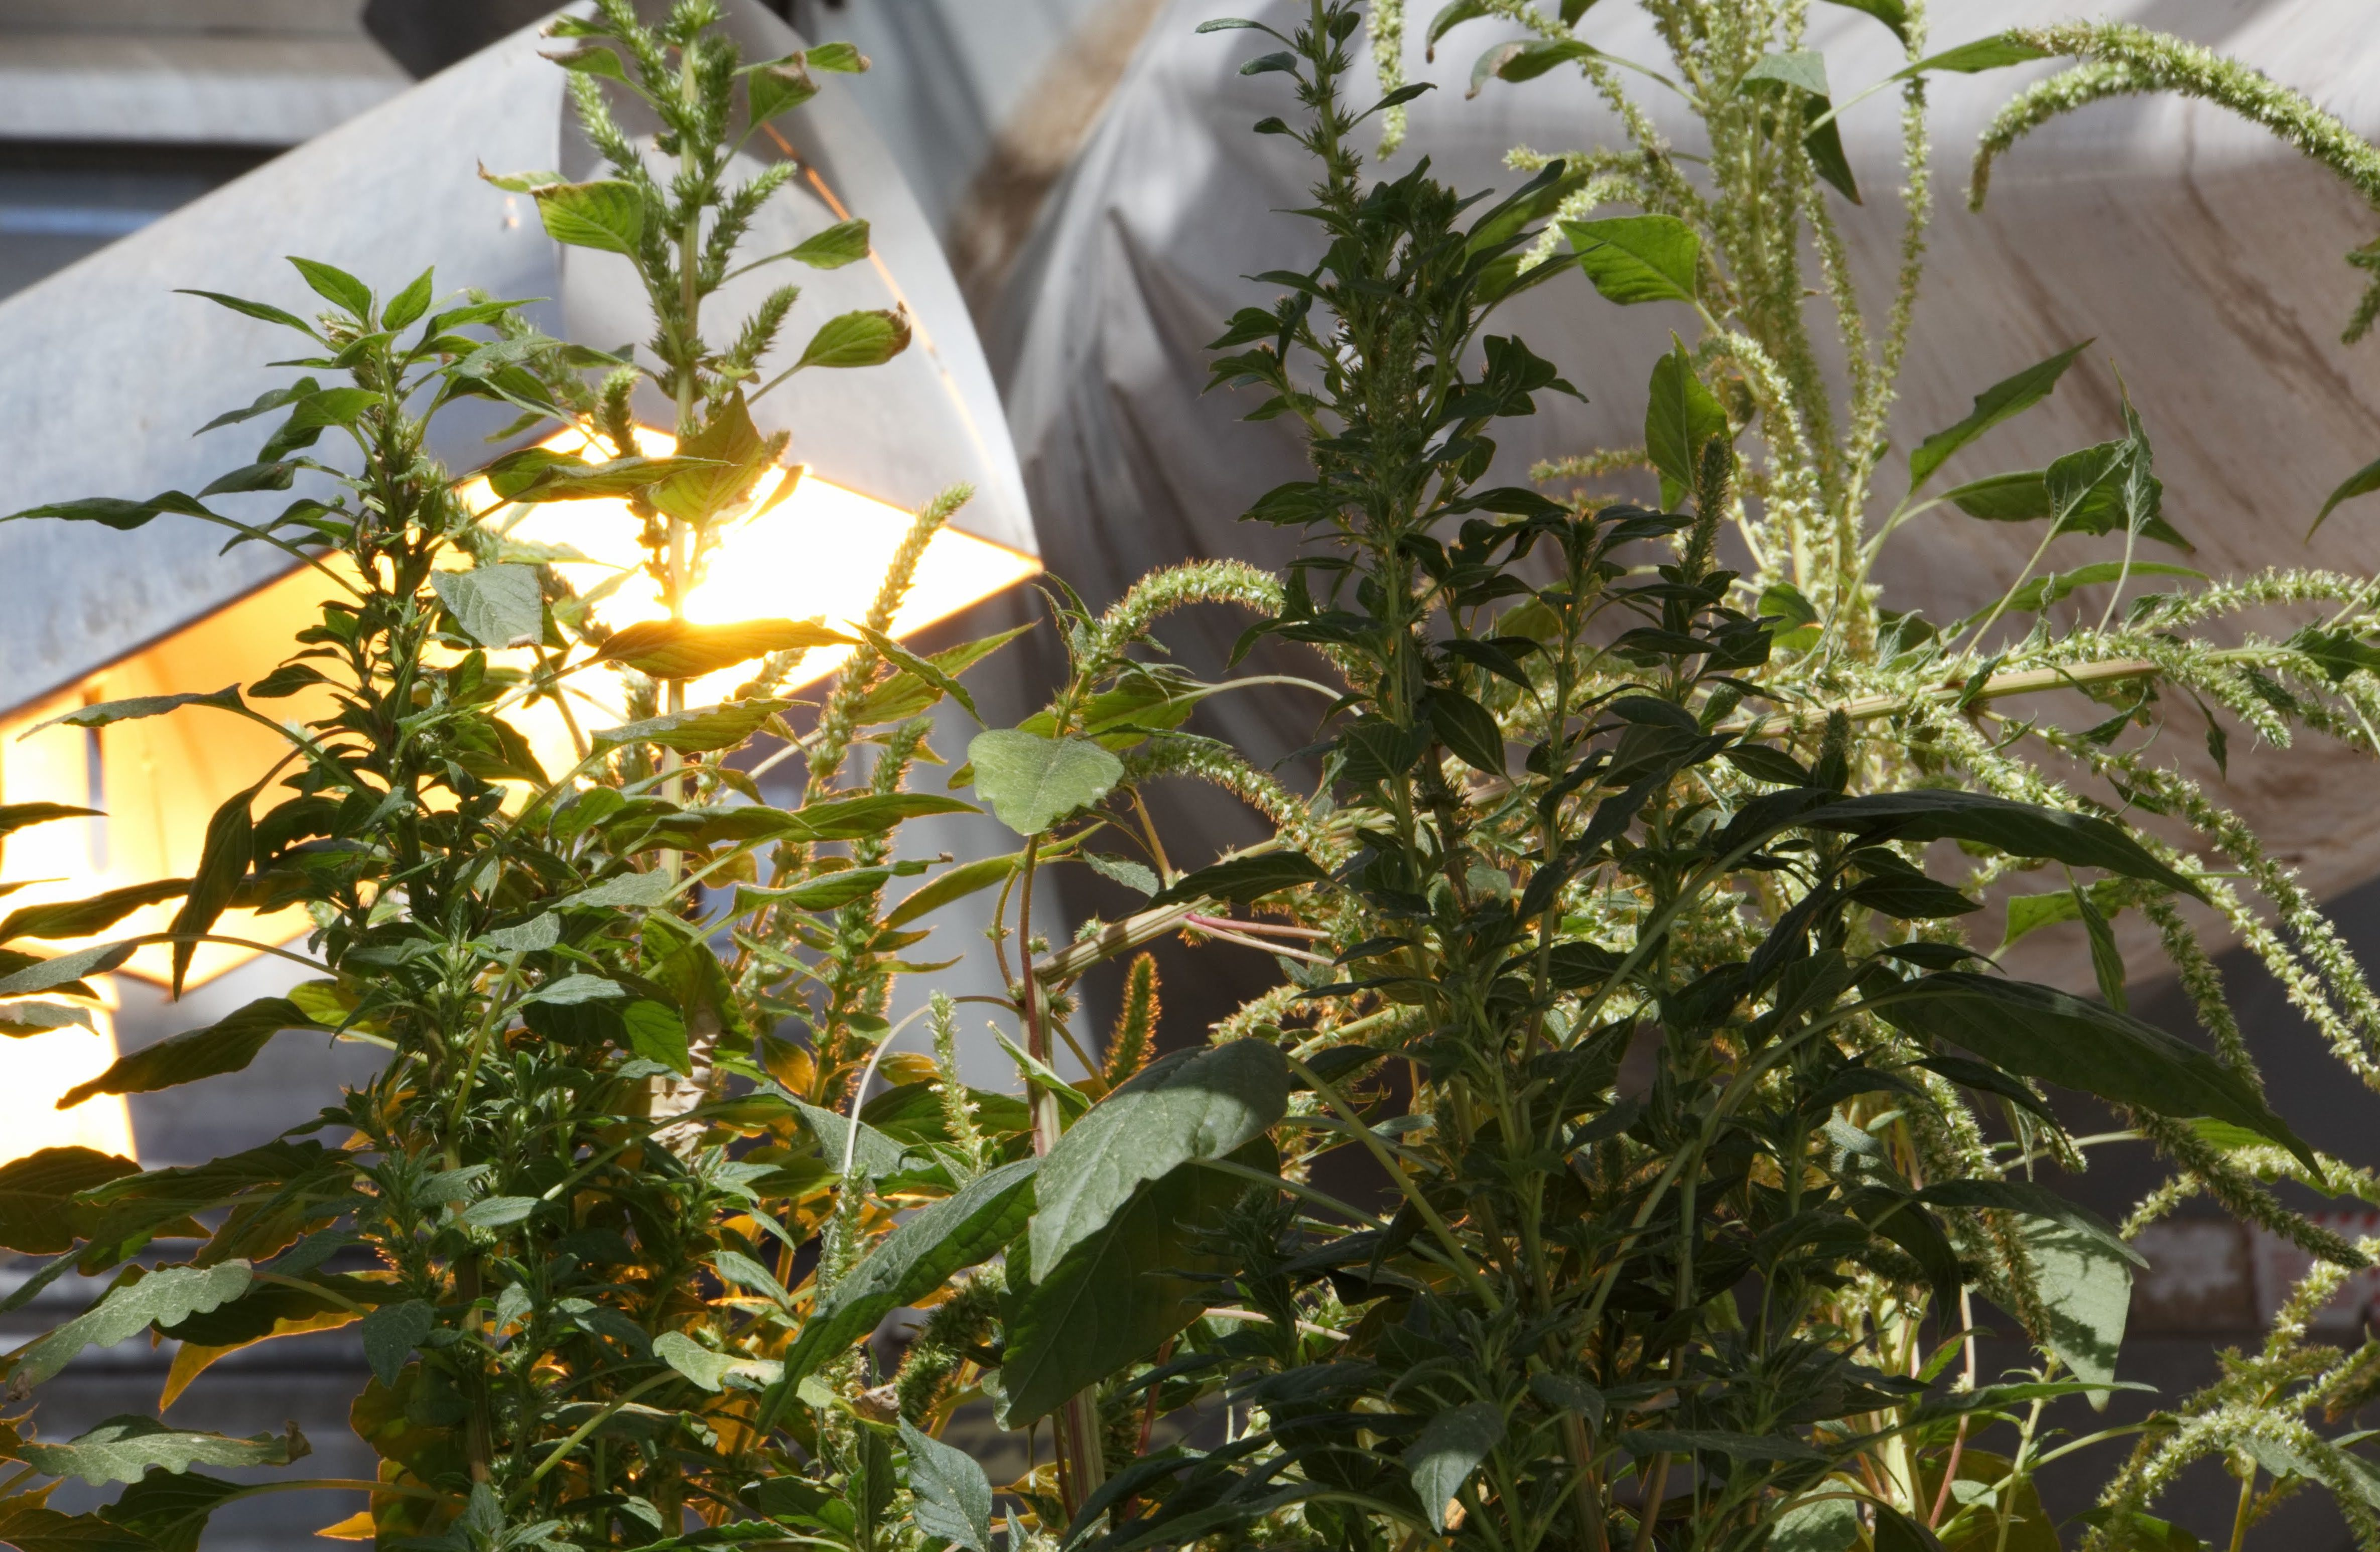 These Palmer amaranth — or pigweed — plants, seen growing in a greenhouse at Kansas State University, appear to be resistant to multiple herbicides. (Dan Charles/NPR)